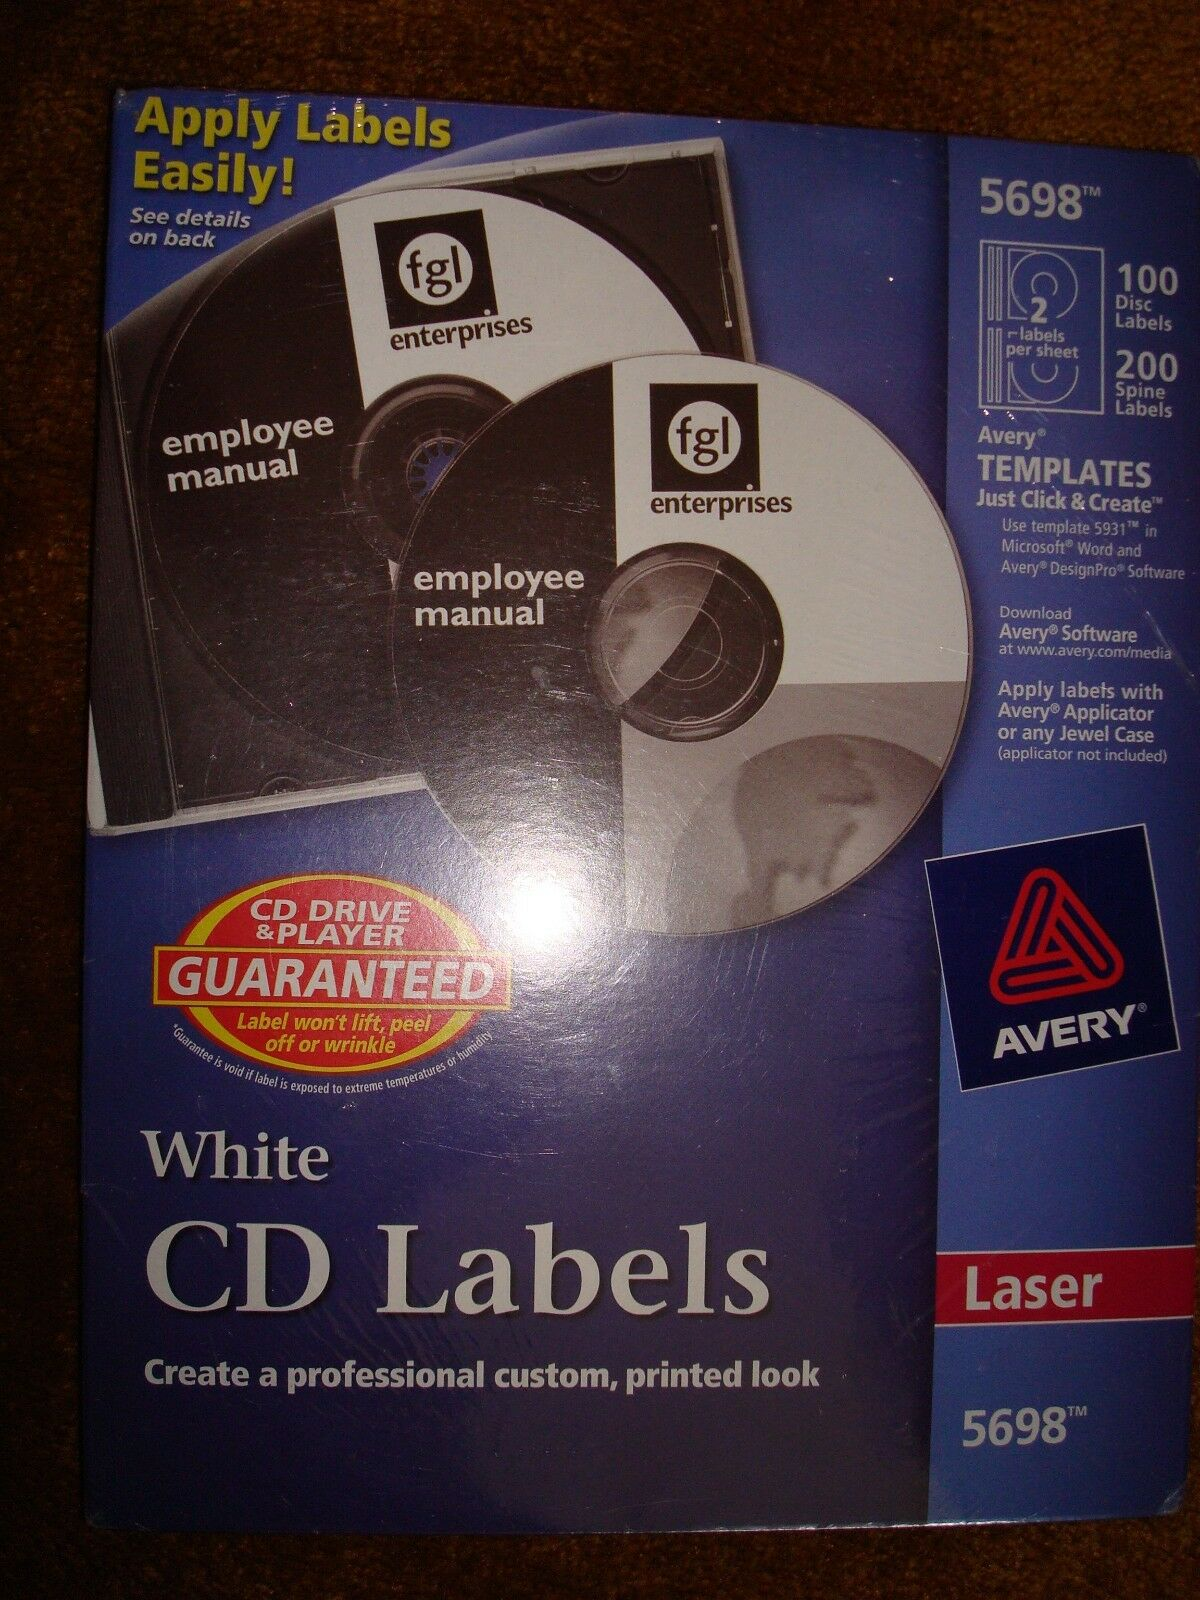 avery cd labels white 5698 25 00 picclick